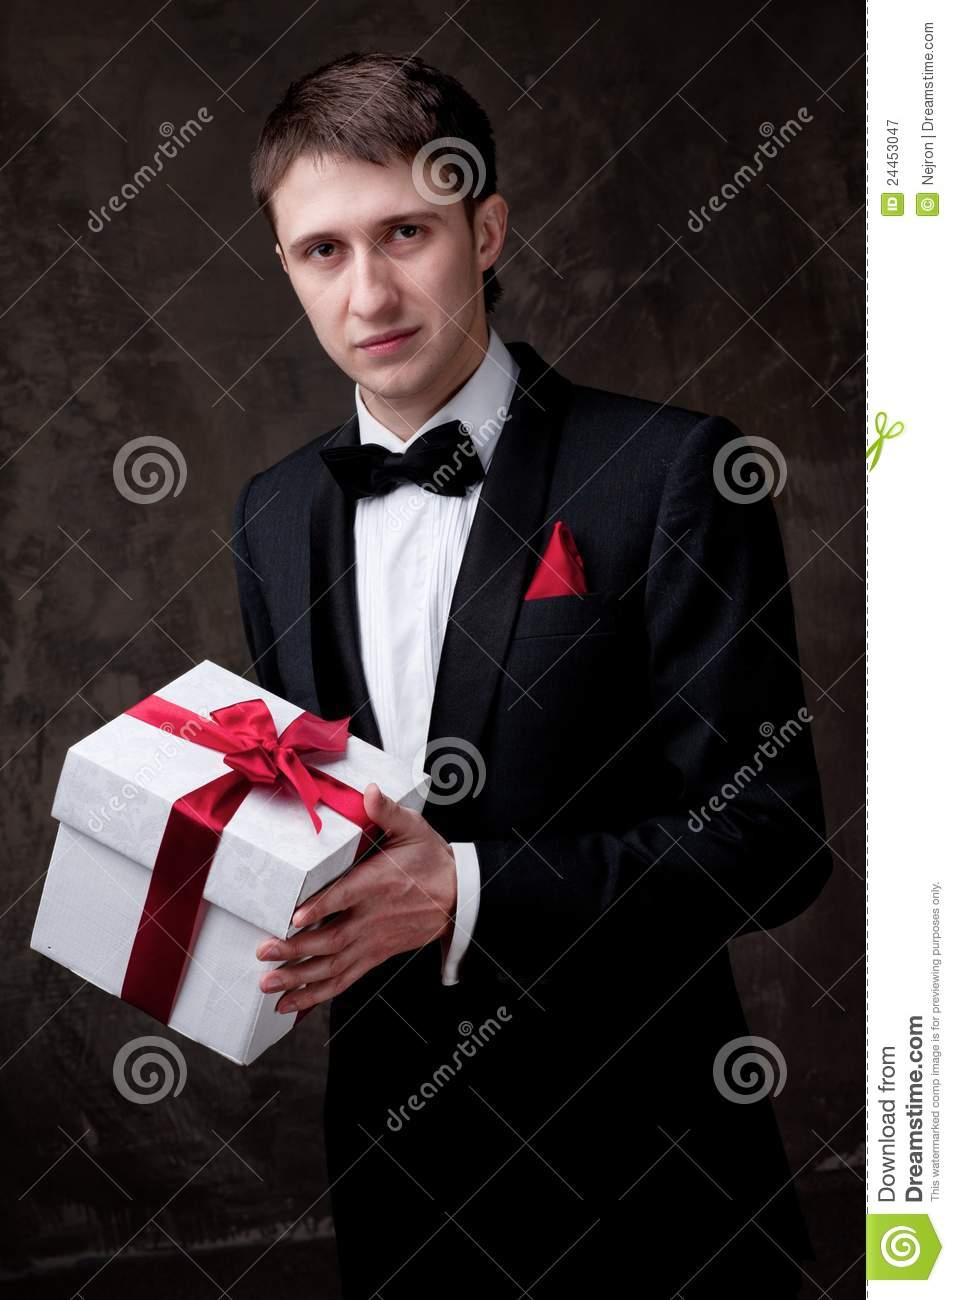 Handsome Man In Tuxedo With A Gift Box Royalty Free Stock ...